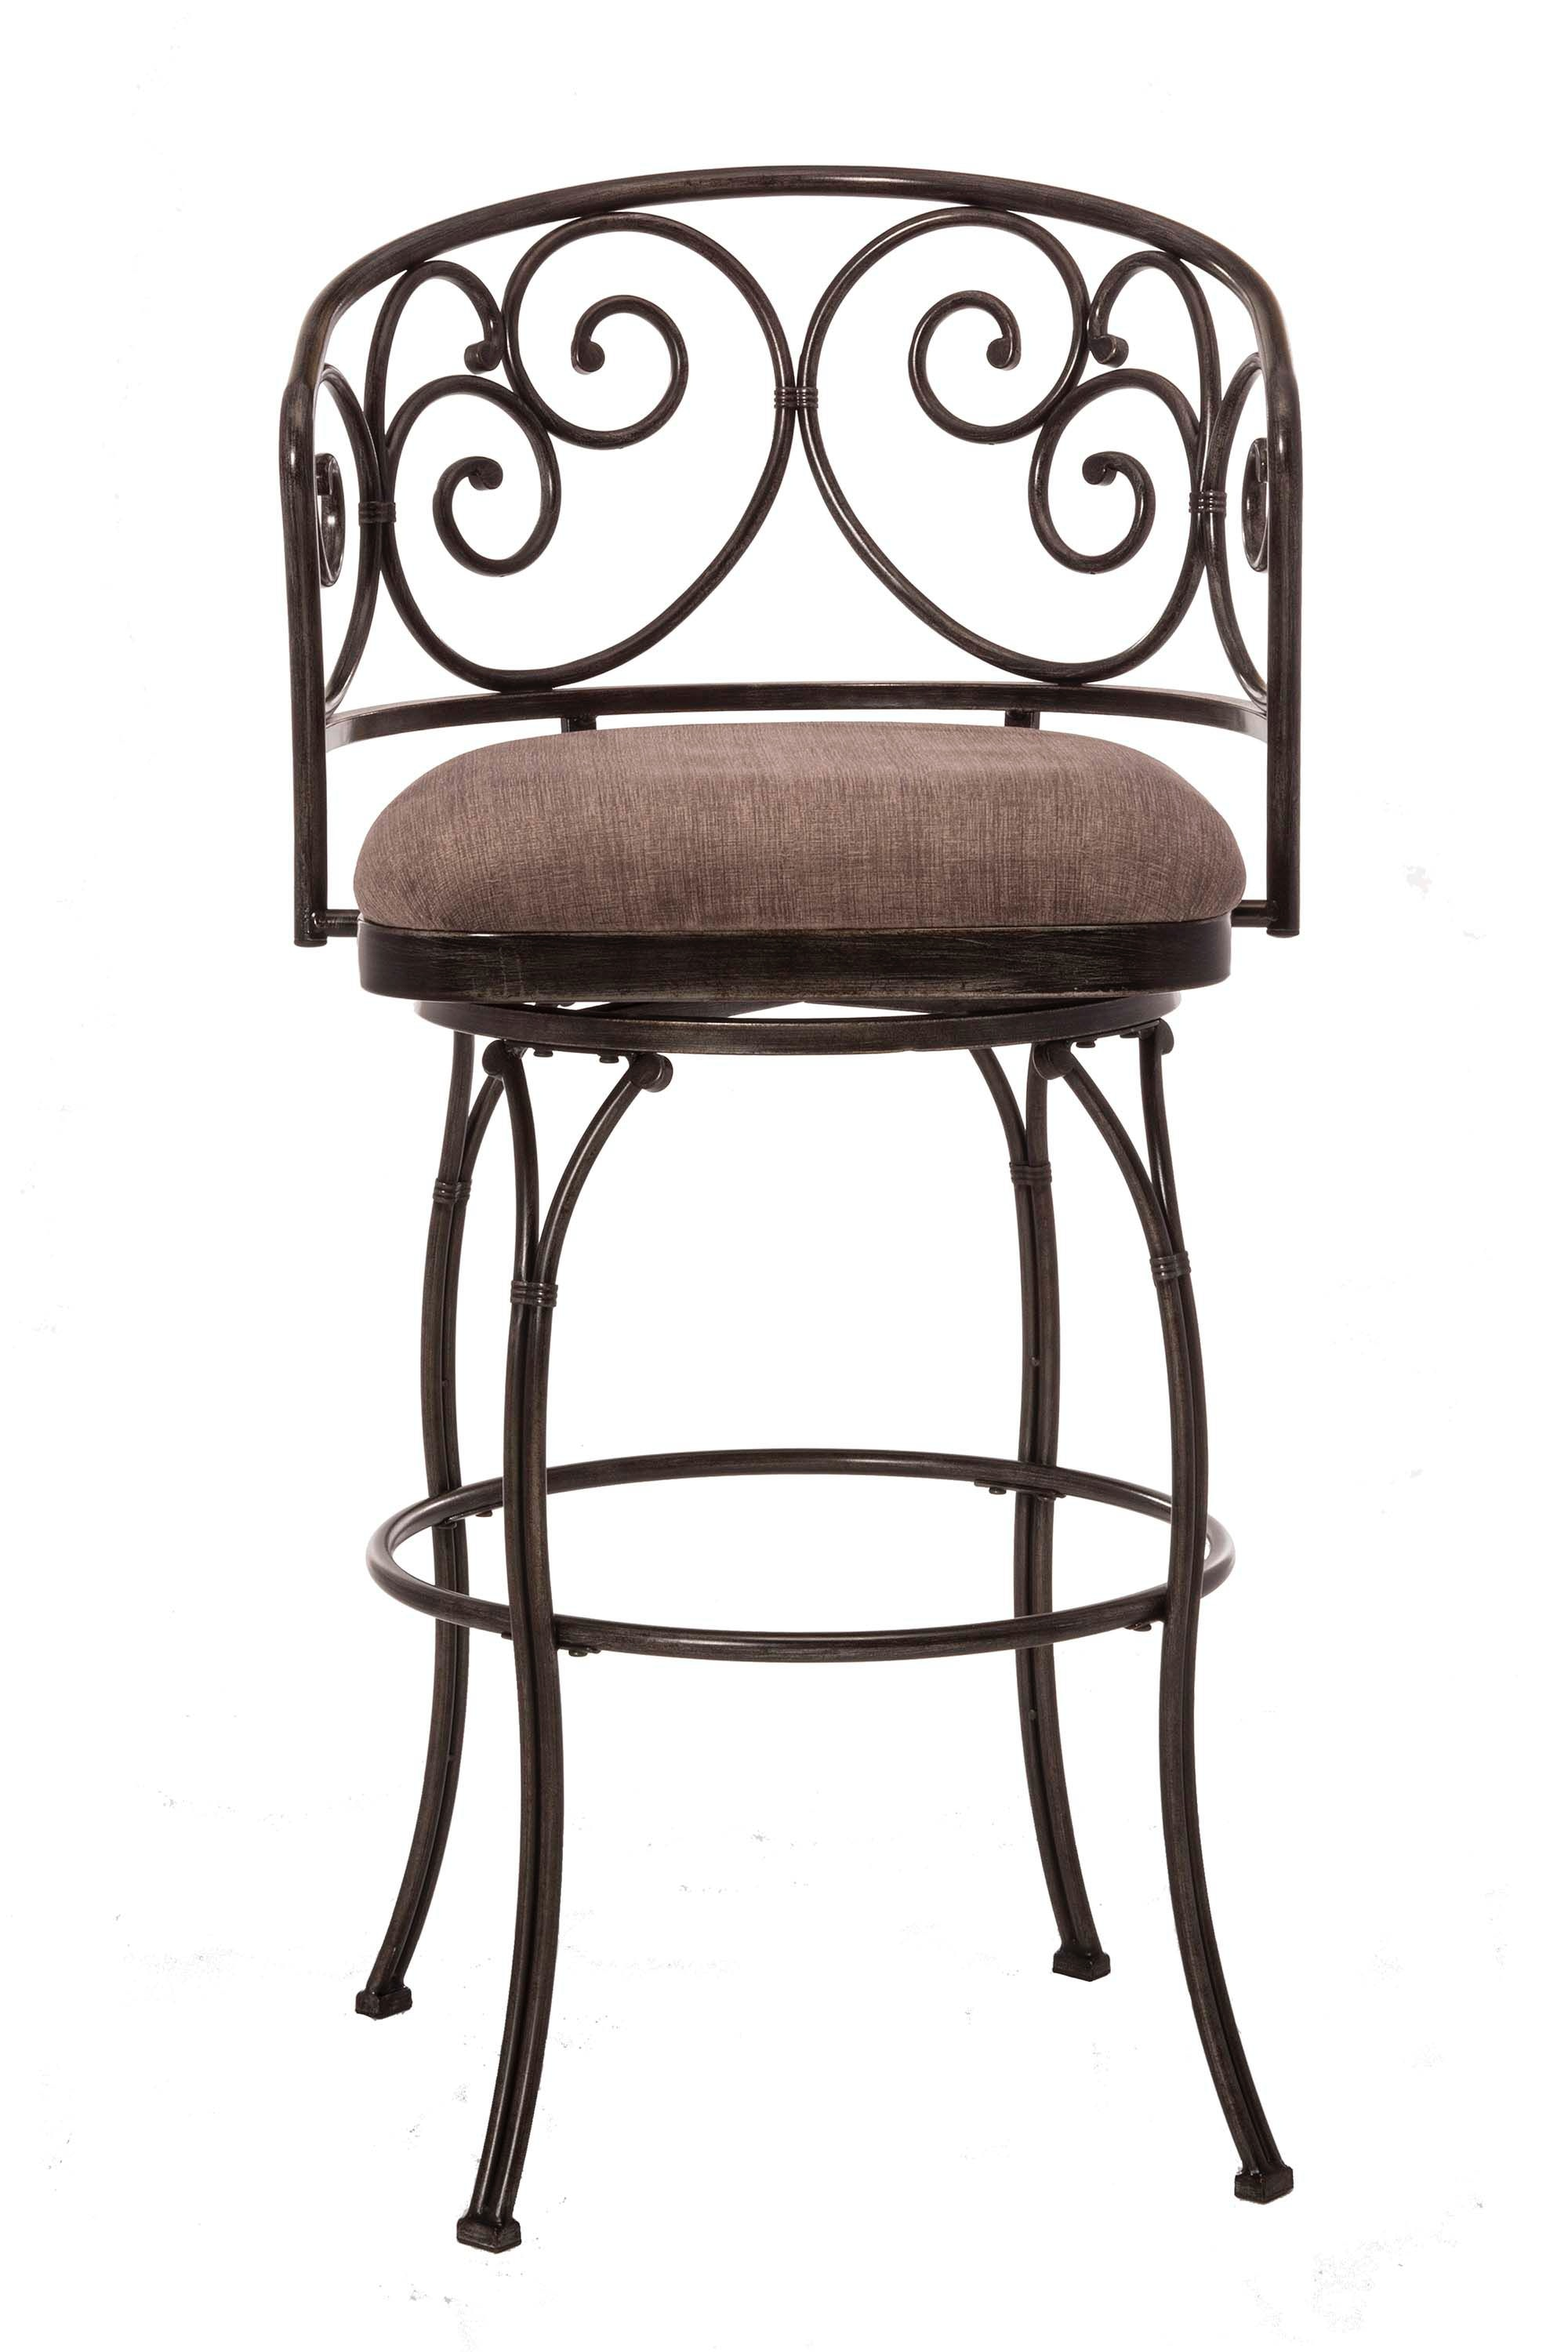 Hillsdale Furniture Bar And Game Room Carrington Swivel Bar Stool 5938 831    Carol House Furniture   Maryland Heights And Valley Park, MO